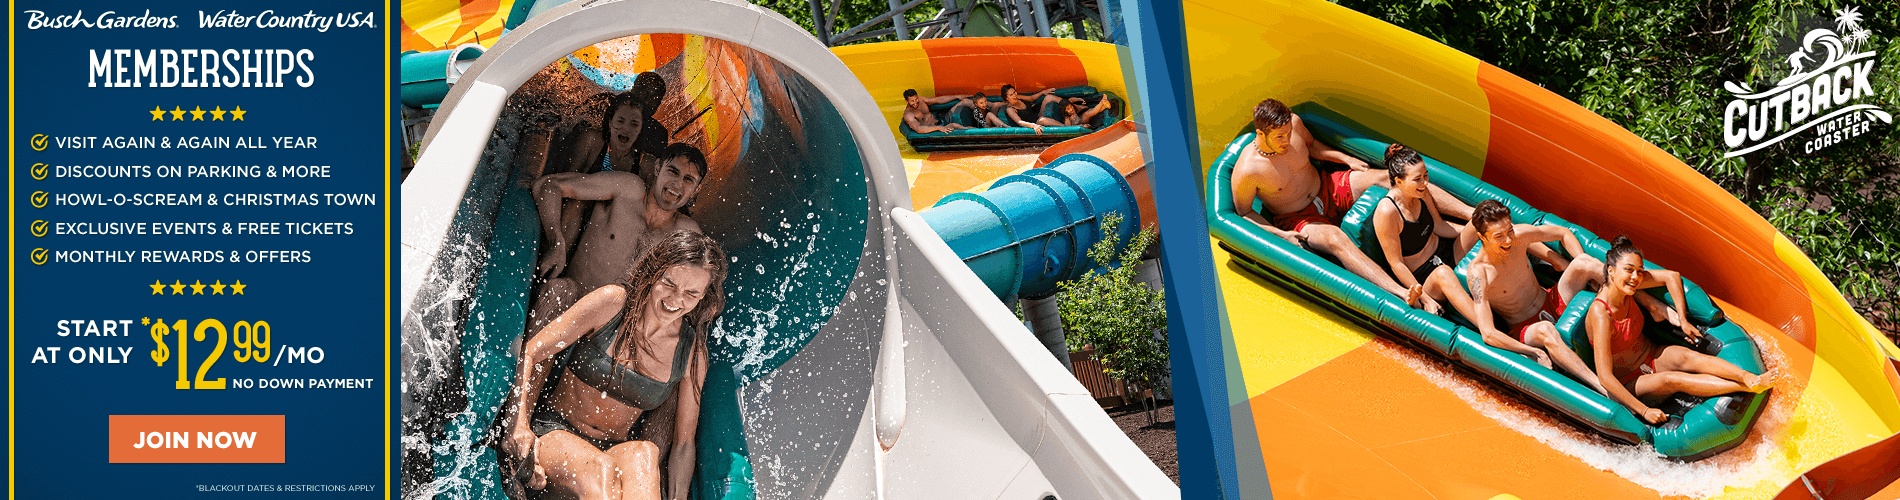 2 Park Busch Gardens Williamsburg & Water Country USA Memberships starting at $12.99 per month. Home of the new Cutback Water Coaster - now open!